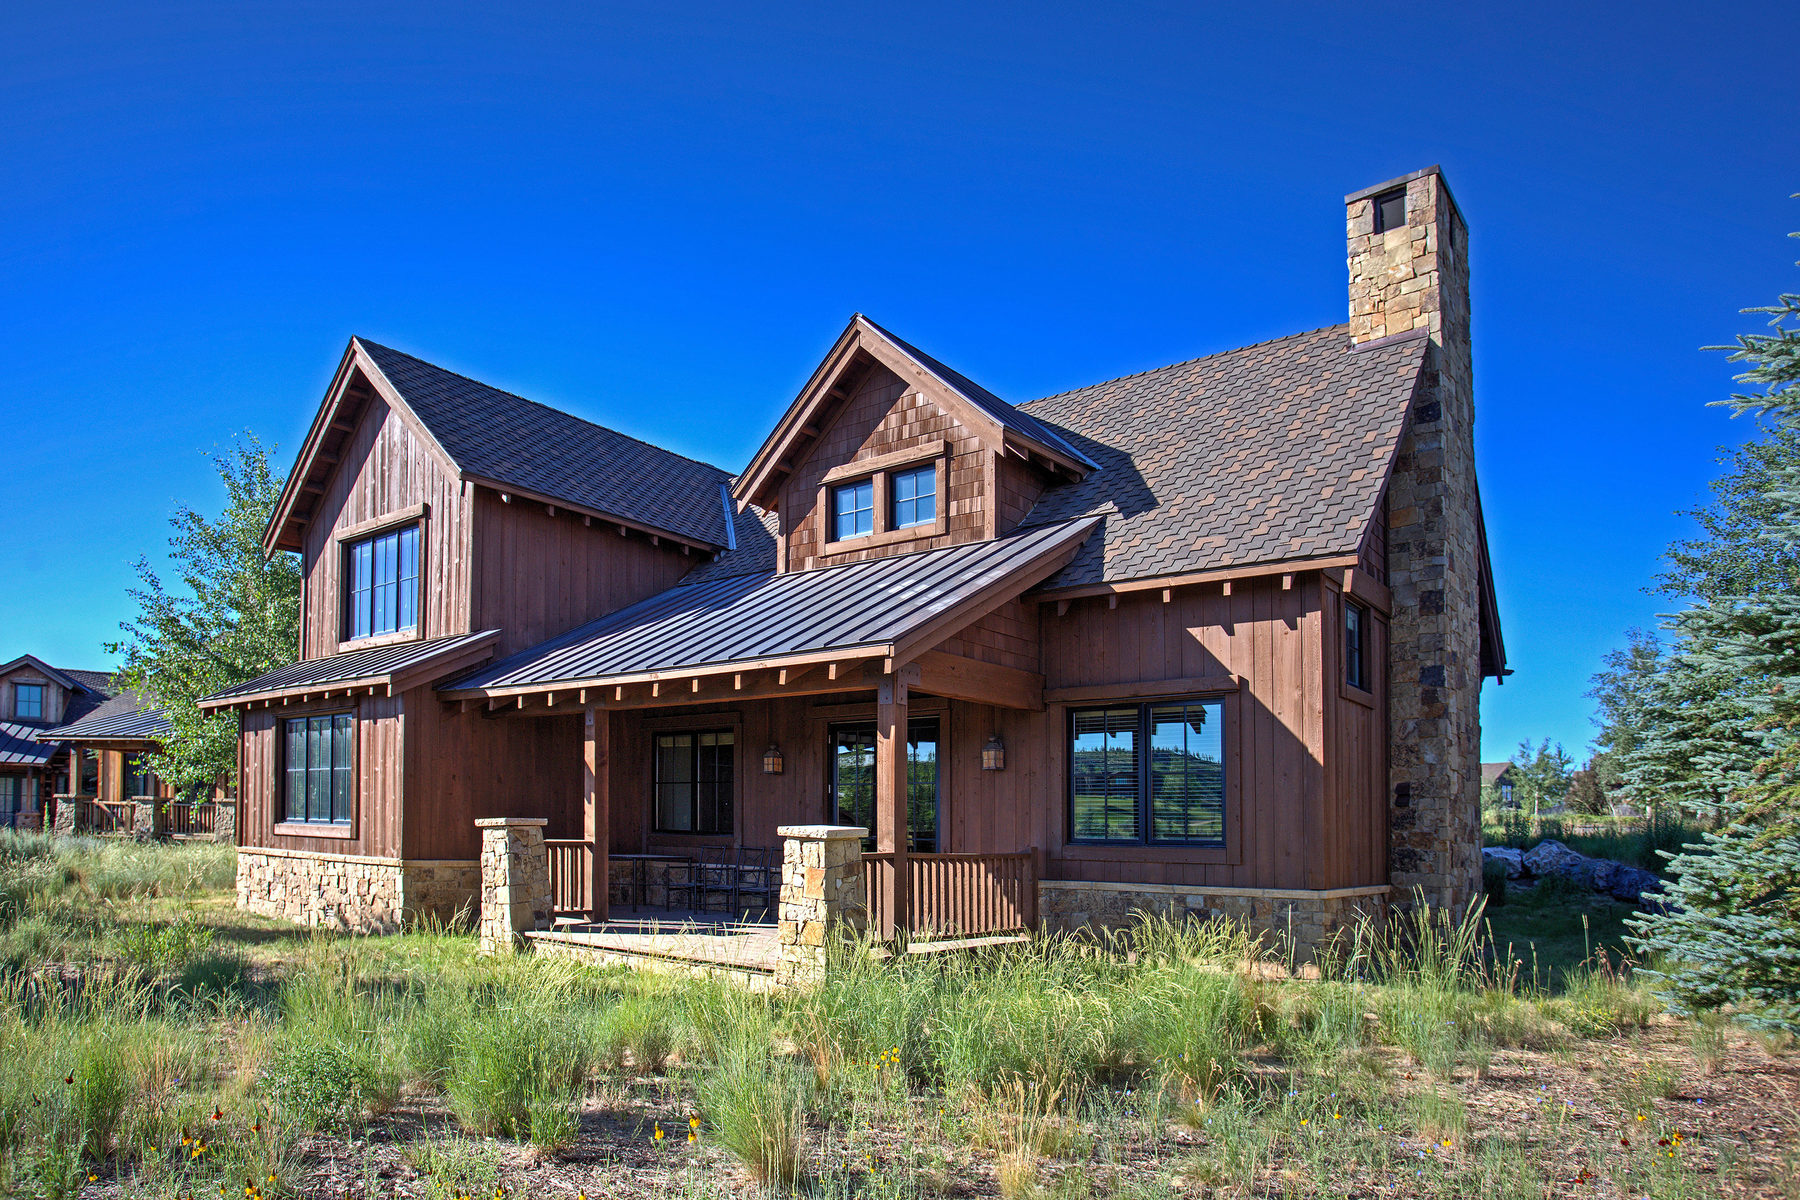 Casa Unifamiliar por un Venta en Beautiful Cabin in Promontory 3604 Blue Sage Trl Park City, Utah, 84098 Estados Unidos